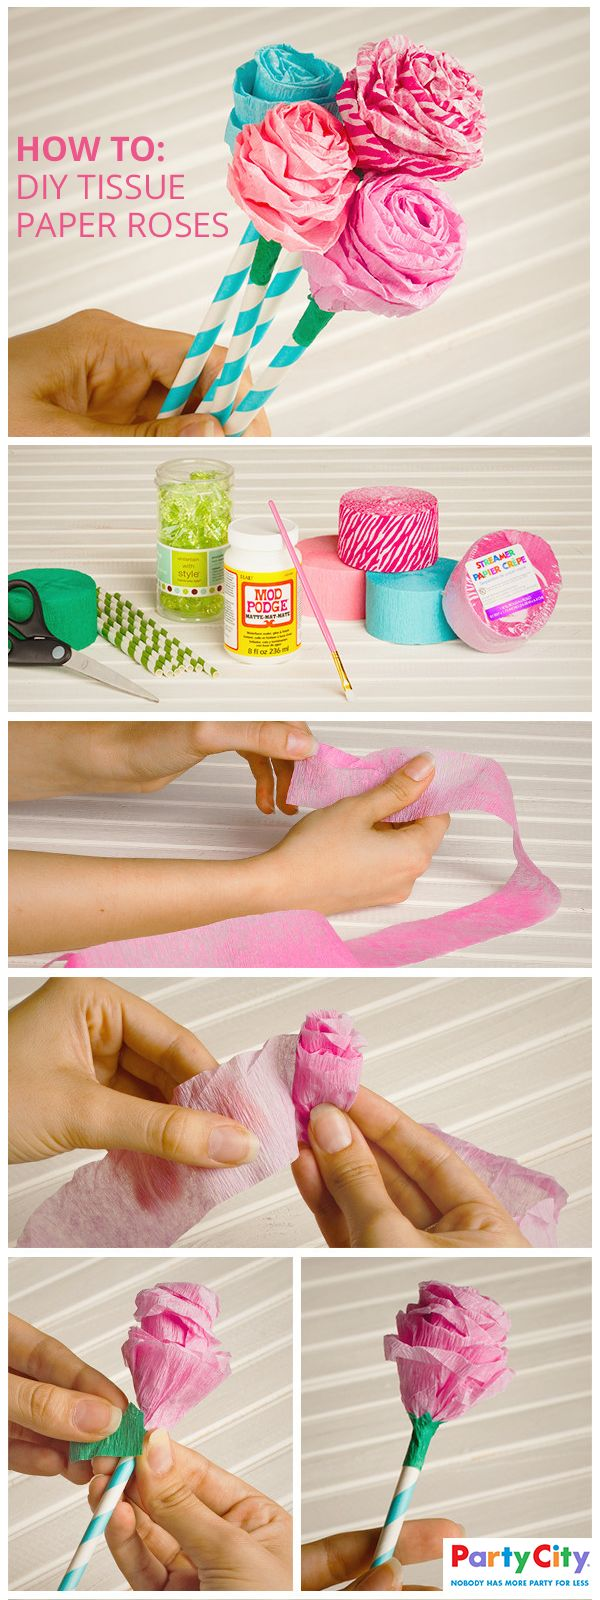 Looking for a fun and cute way to add a DIY touch to that next birthday party or baby shower? Transform crepe paper streamers into adorable tissue paper flowers to make beautiful additions to your tablescape or sweet party favors for your little ones. Party City is home not only to all your party supplies but creative and fun ideas of how to make the most out of them. Join the party and shop all your essentials at PartyCity.com.